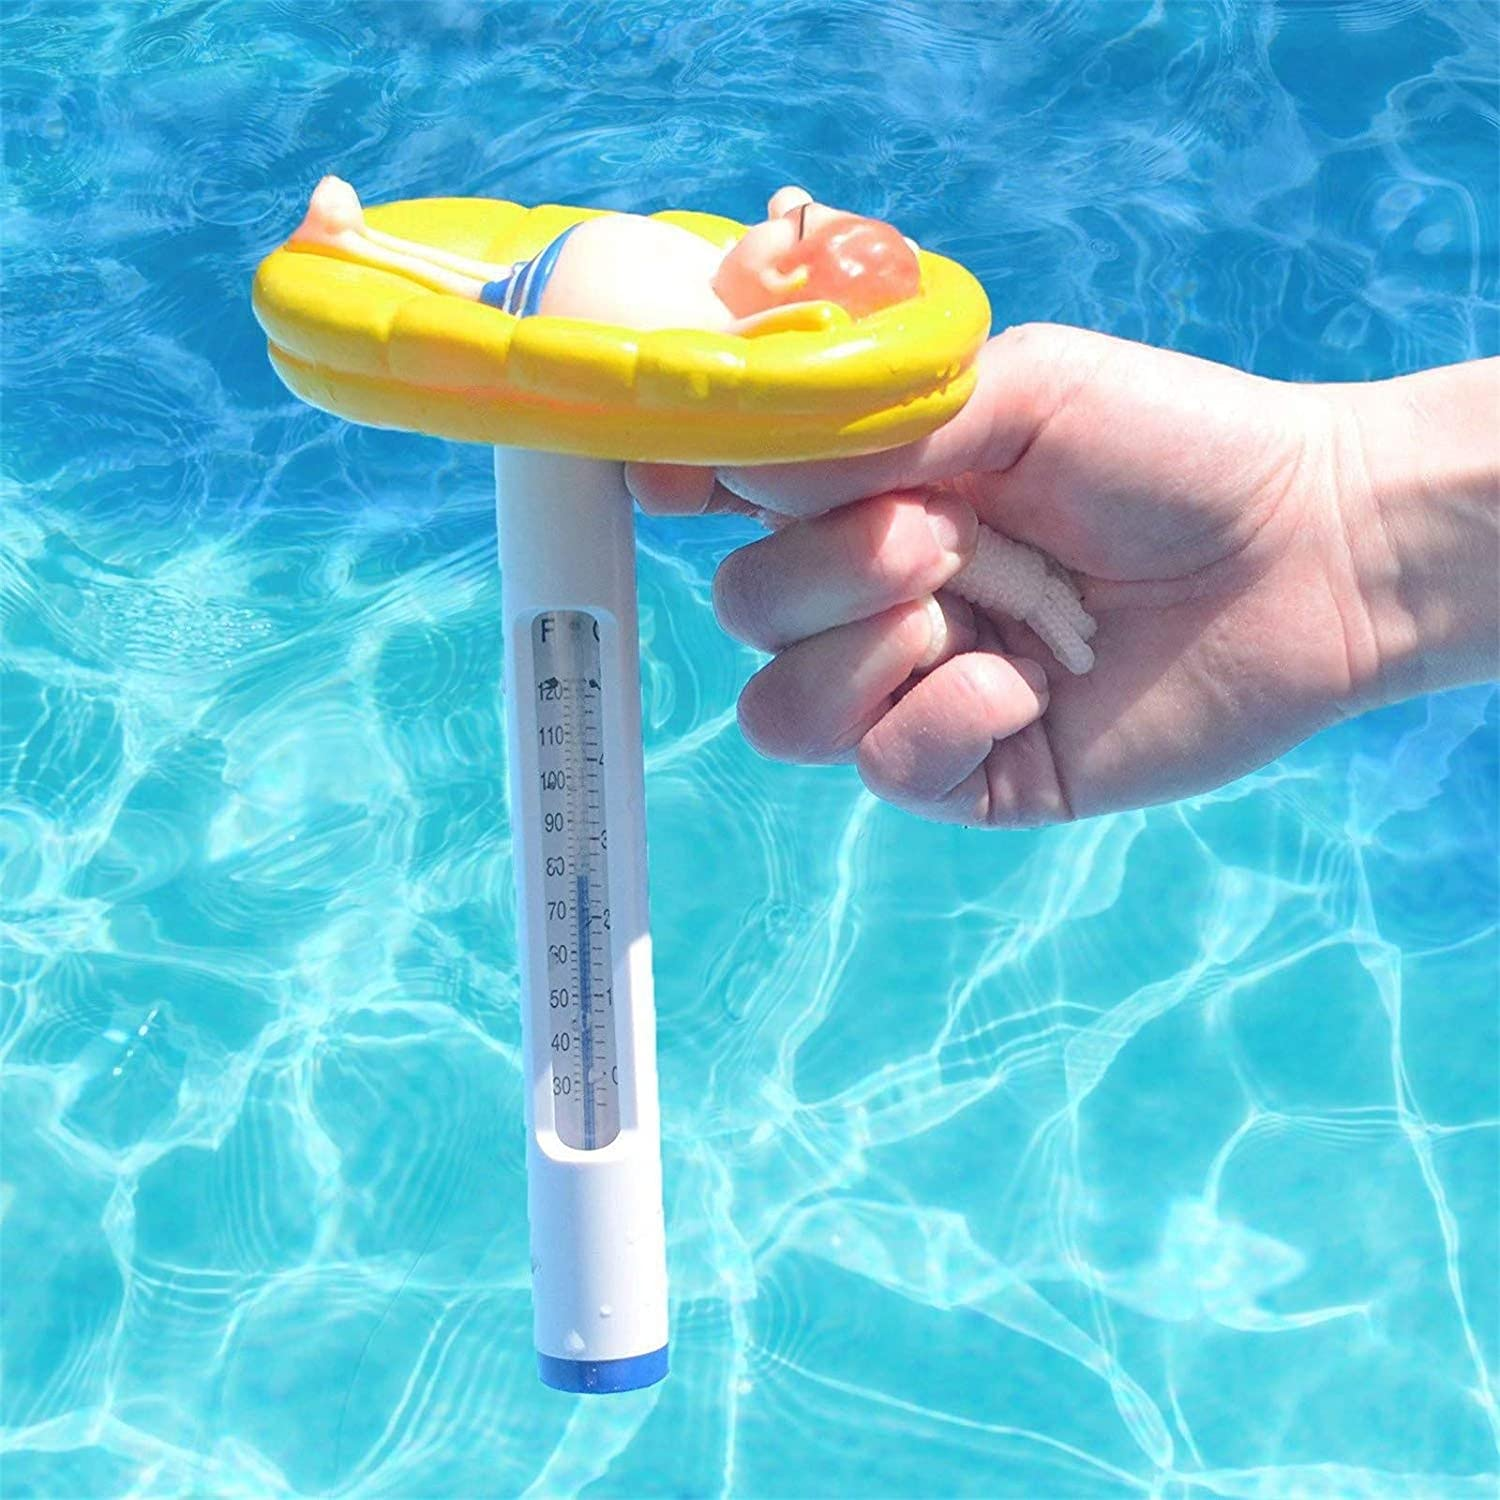 Spas Hot Tubs Water Thermometer Aquarium,for Outdoor /& Indoor Swimming Pools Aquariums /& Fish Ponds as Shown Pool Thermometer Large Floating Water Temperature Thermometers with String